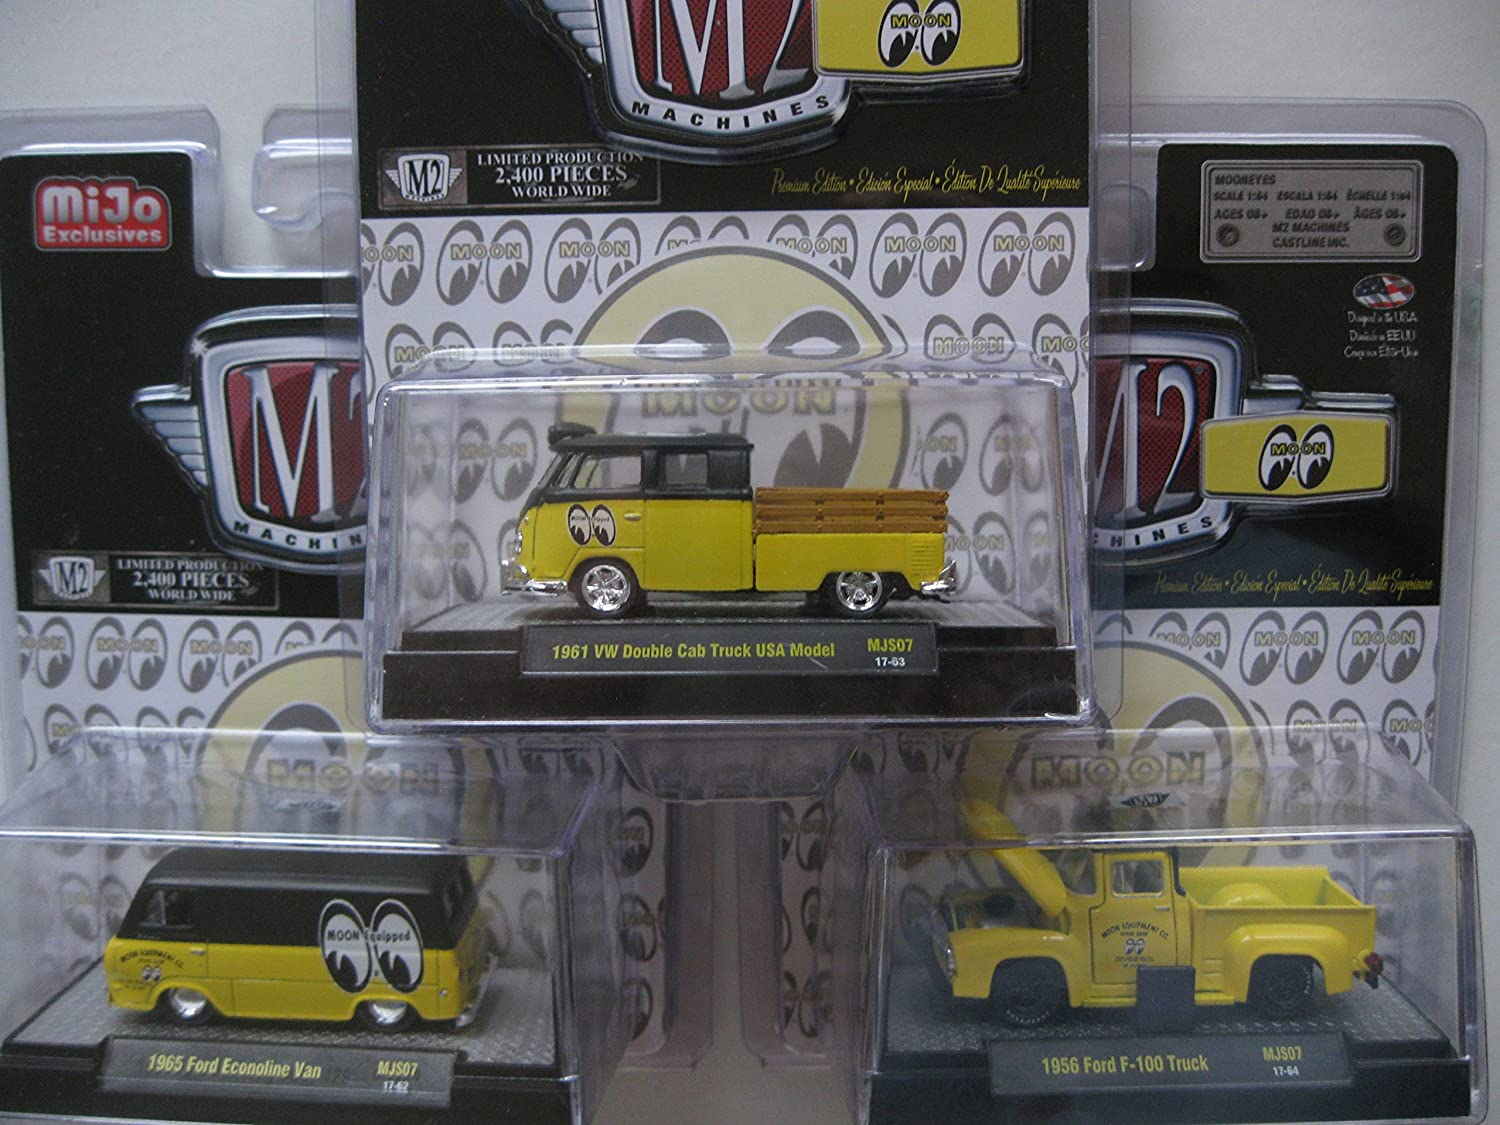 New 164 M2 Machines Collection Mooneye Mijo Vw Ford 1949 Econoline Van Pickup Set Of 3pcs Diecast Model Car By Toys Games